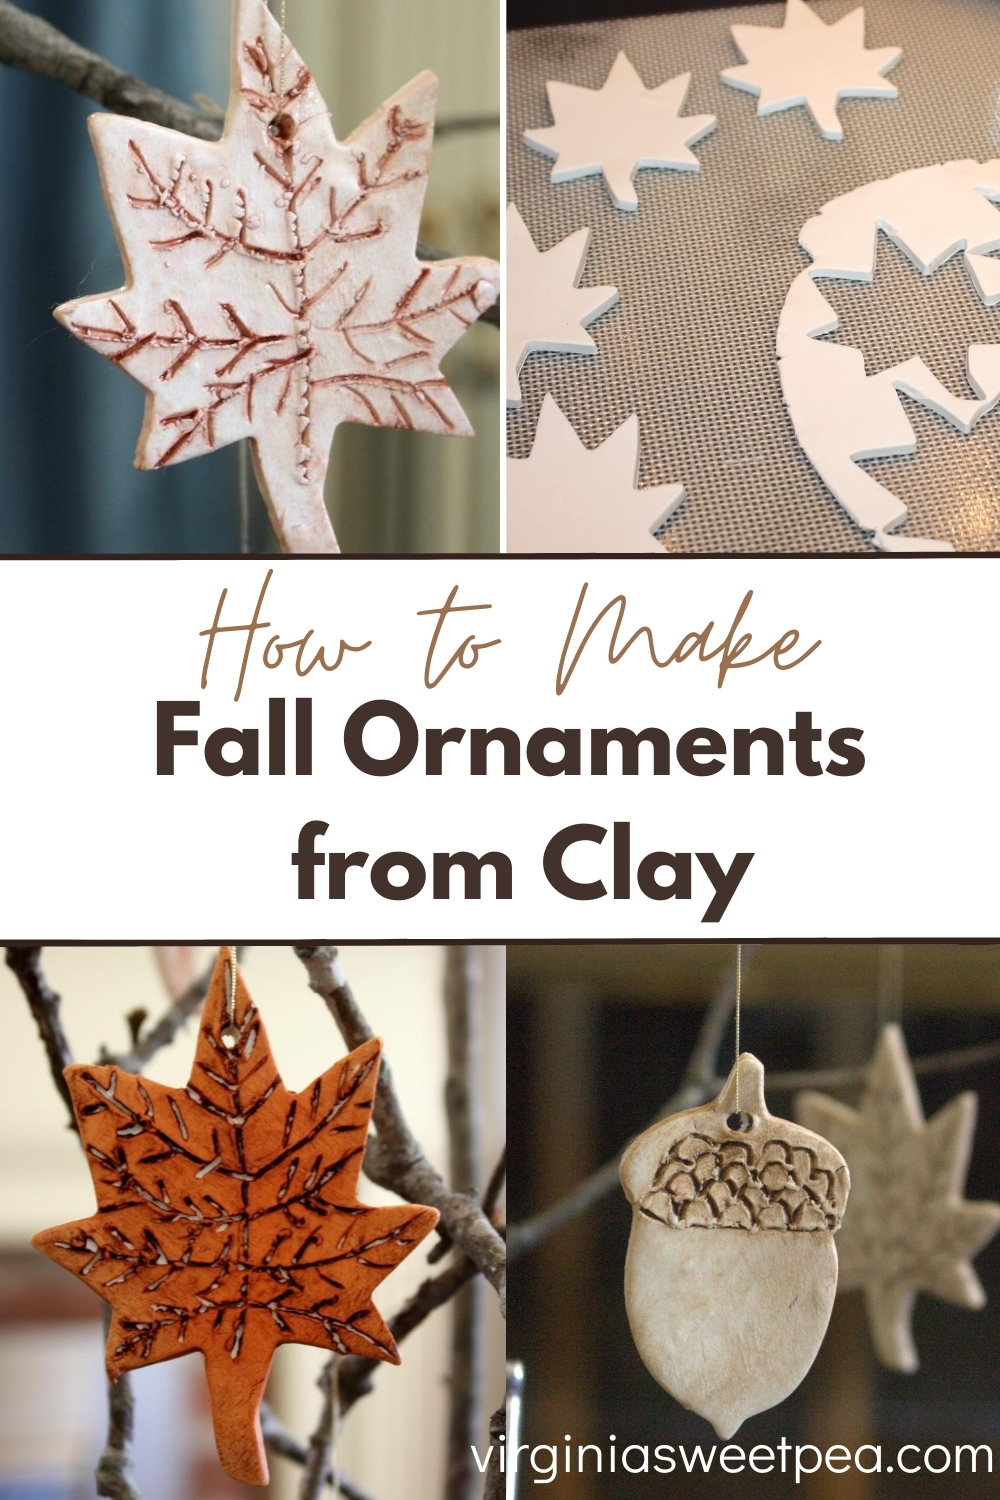 Leaf shaped ornaments made from clay